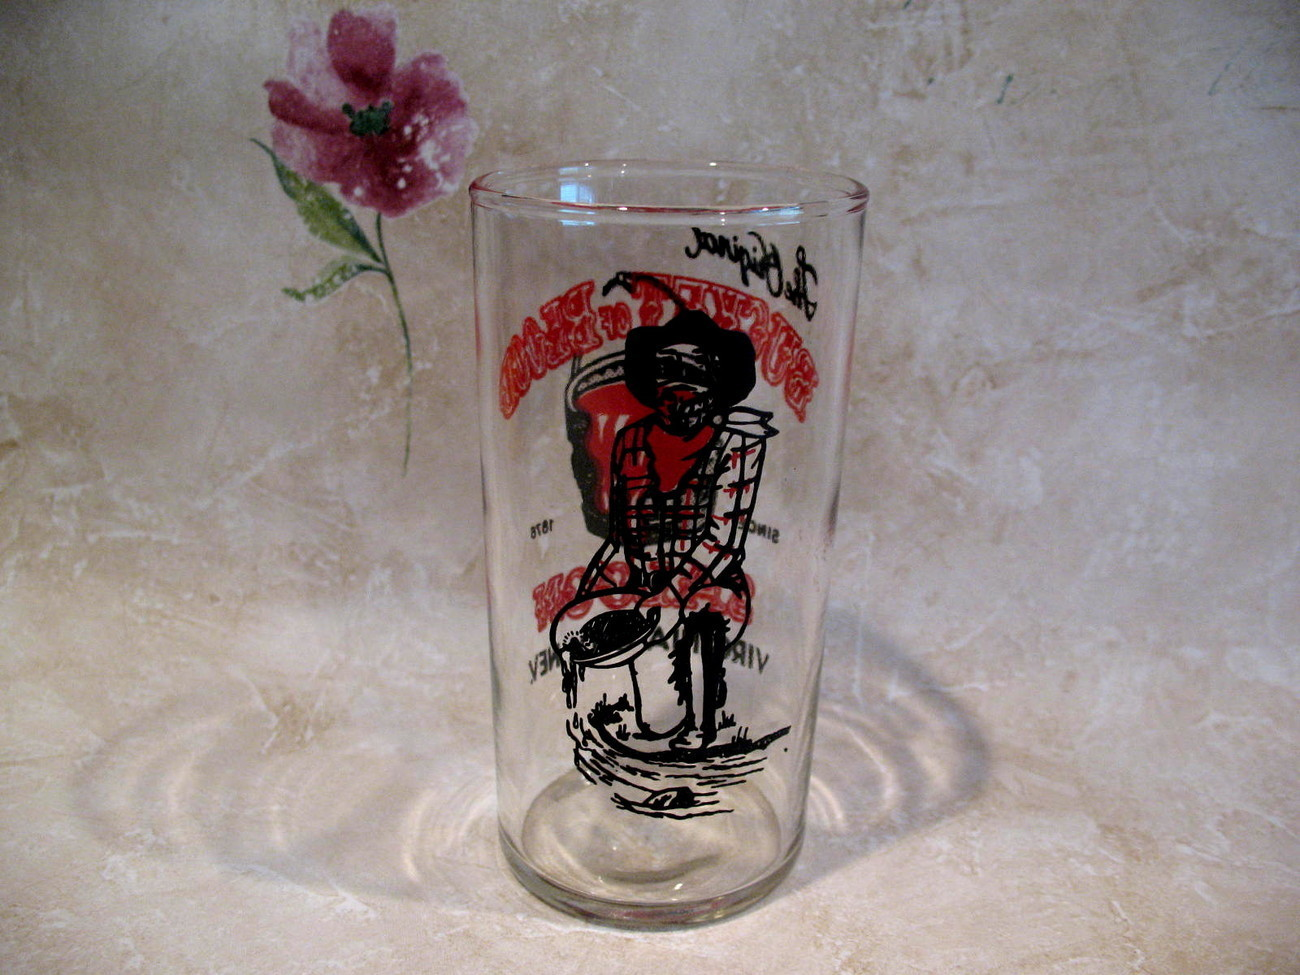 Original Bucket of Blood Saloon Casino Beer Glass Vintage Souvenir Virginia City